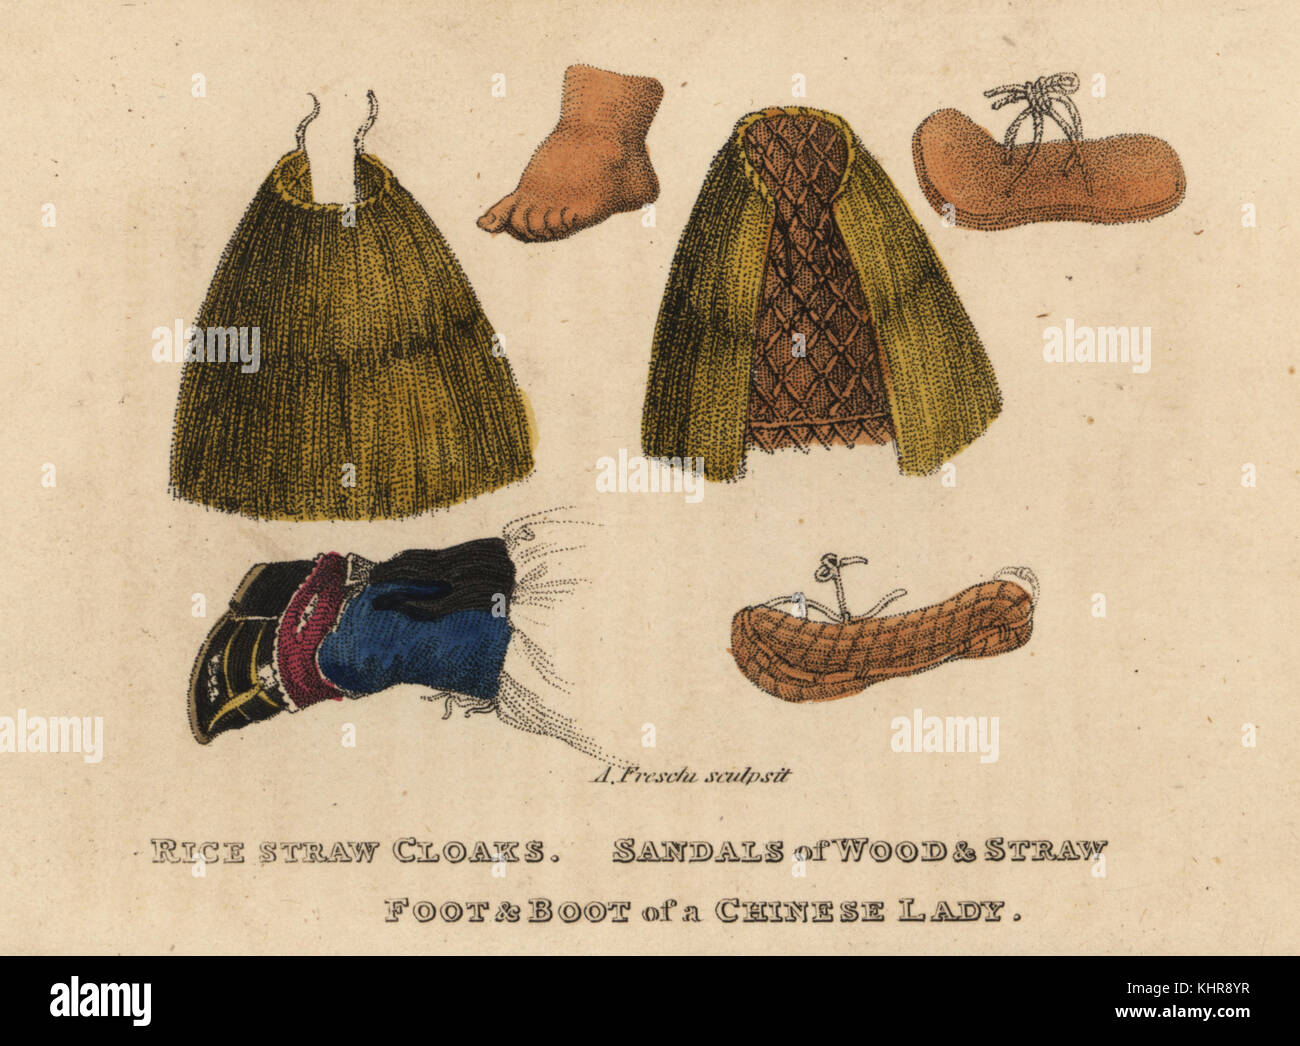 Rice-straw cloak, wood and straw sandals, Chinese woman's bound foot and boot. Handcoloured copperplate engraving - Stock Image